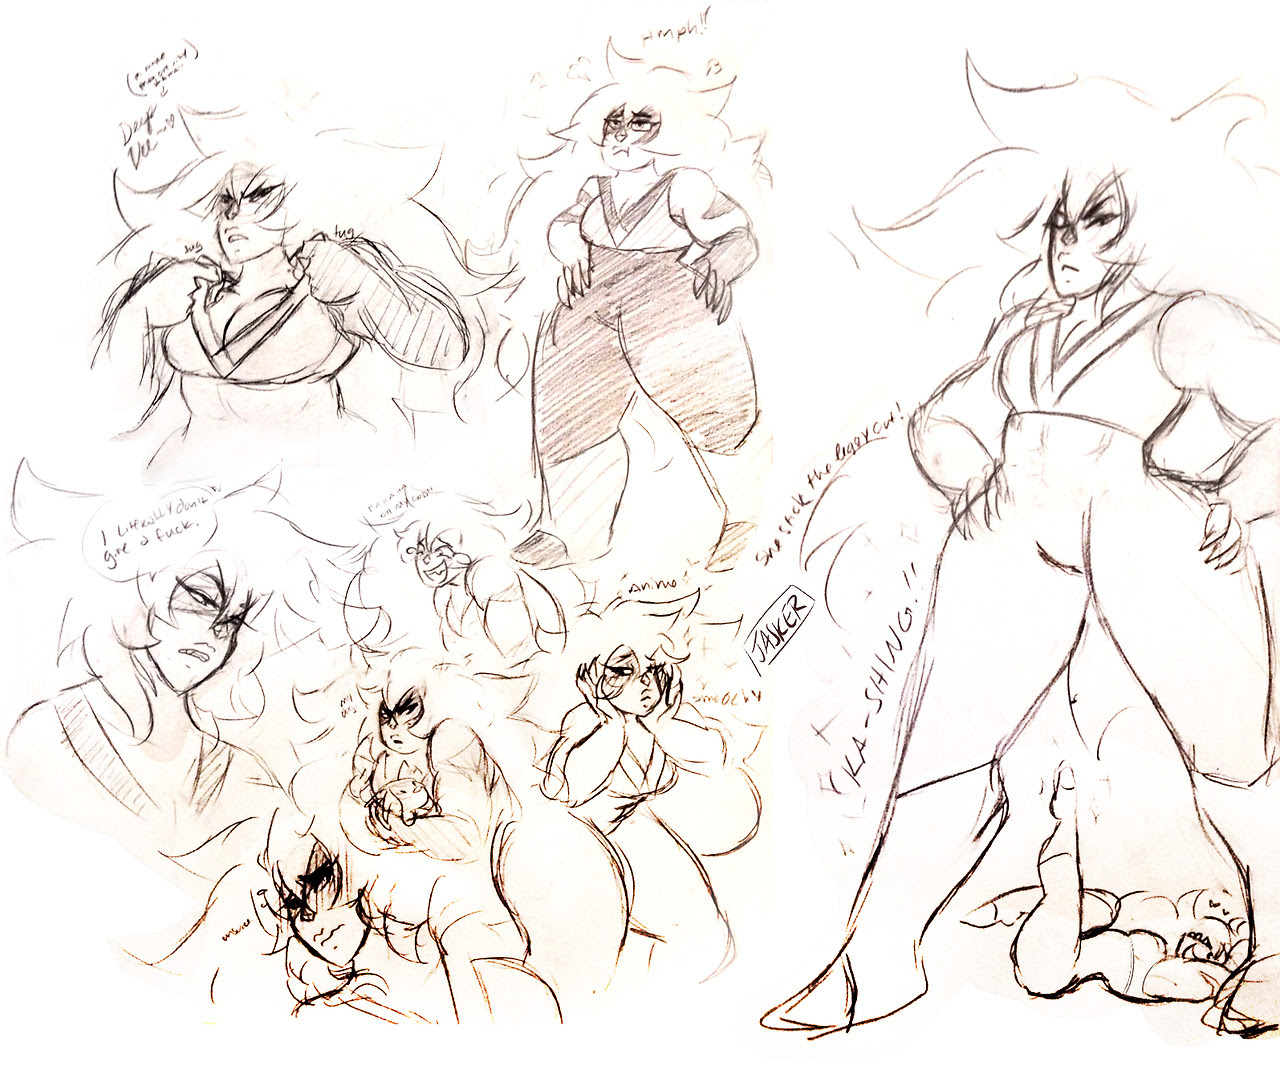 jasper doodles! it was a busy day so this was all i could do at work lol